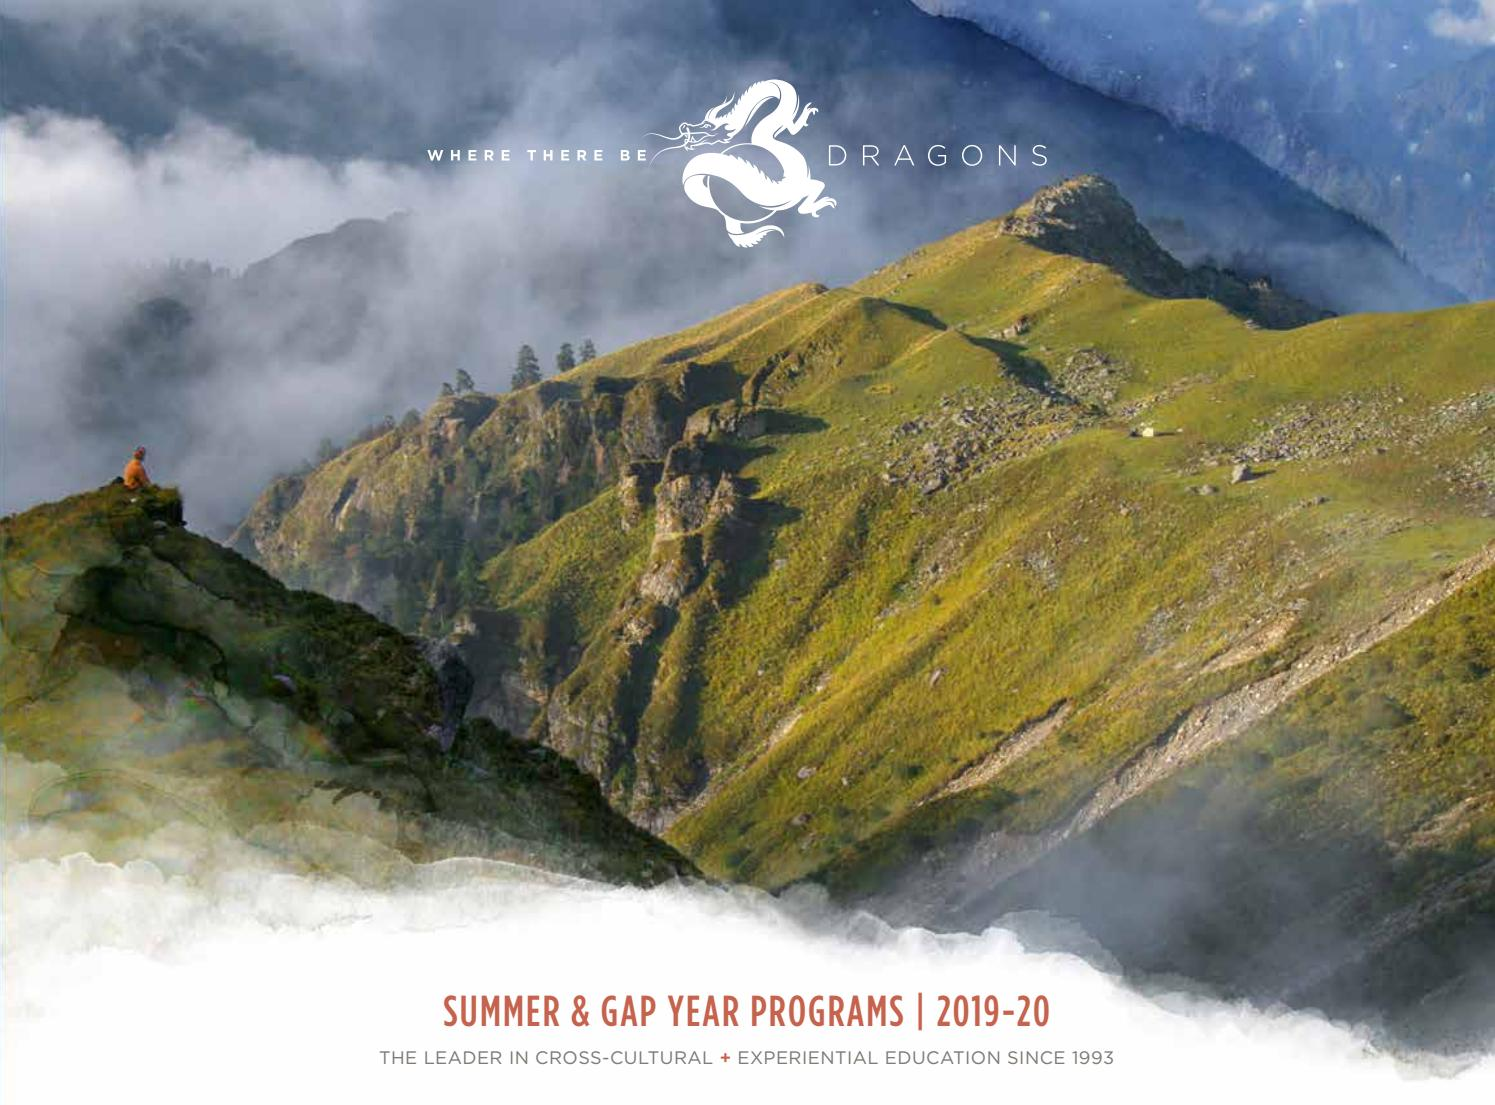 Dragons 2019 Catalog  Summer   Gap Year Programs by Where There Be Dragons  (International Experiential Education) - issuu c5d1a5eebc1